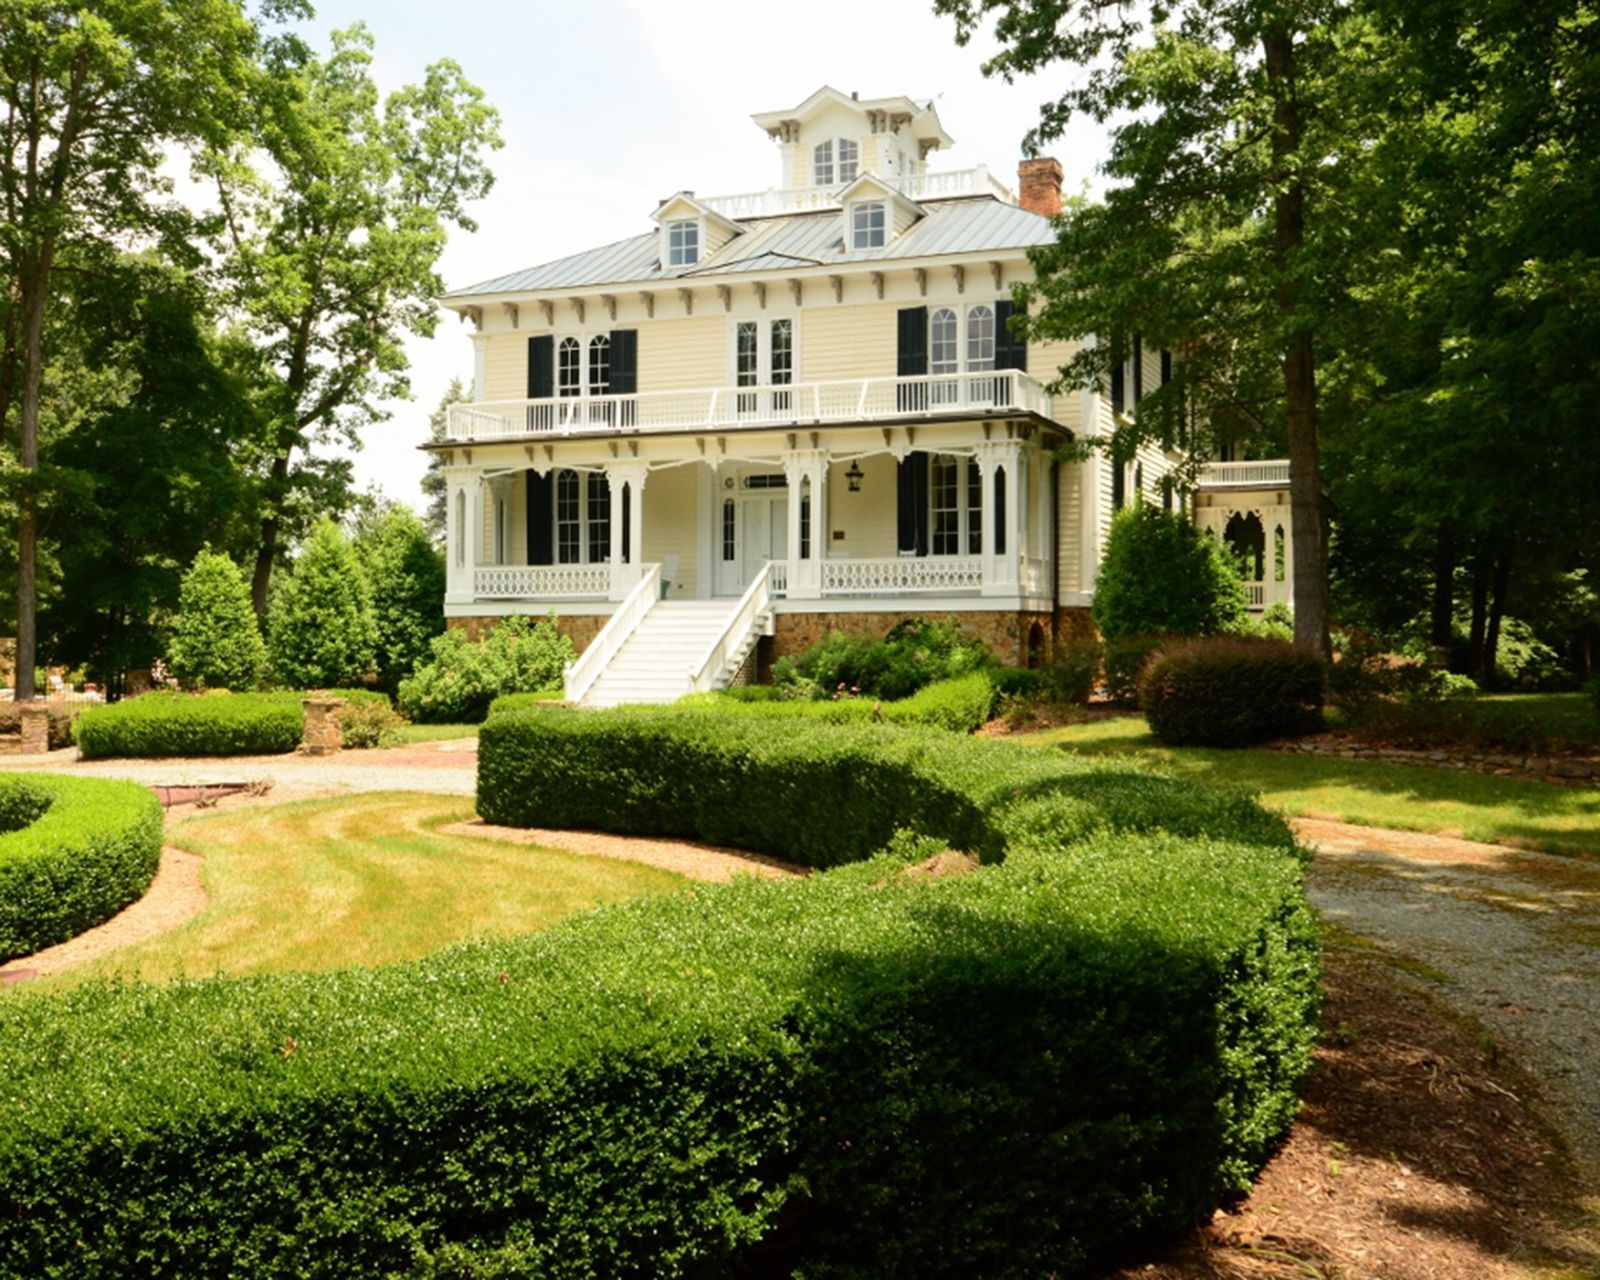 The 10 Most Beautiful Historic Homes on the Market in 2015